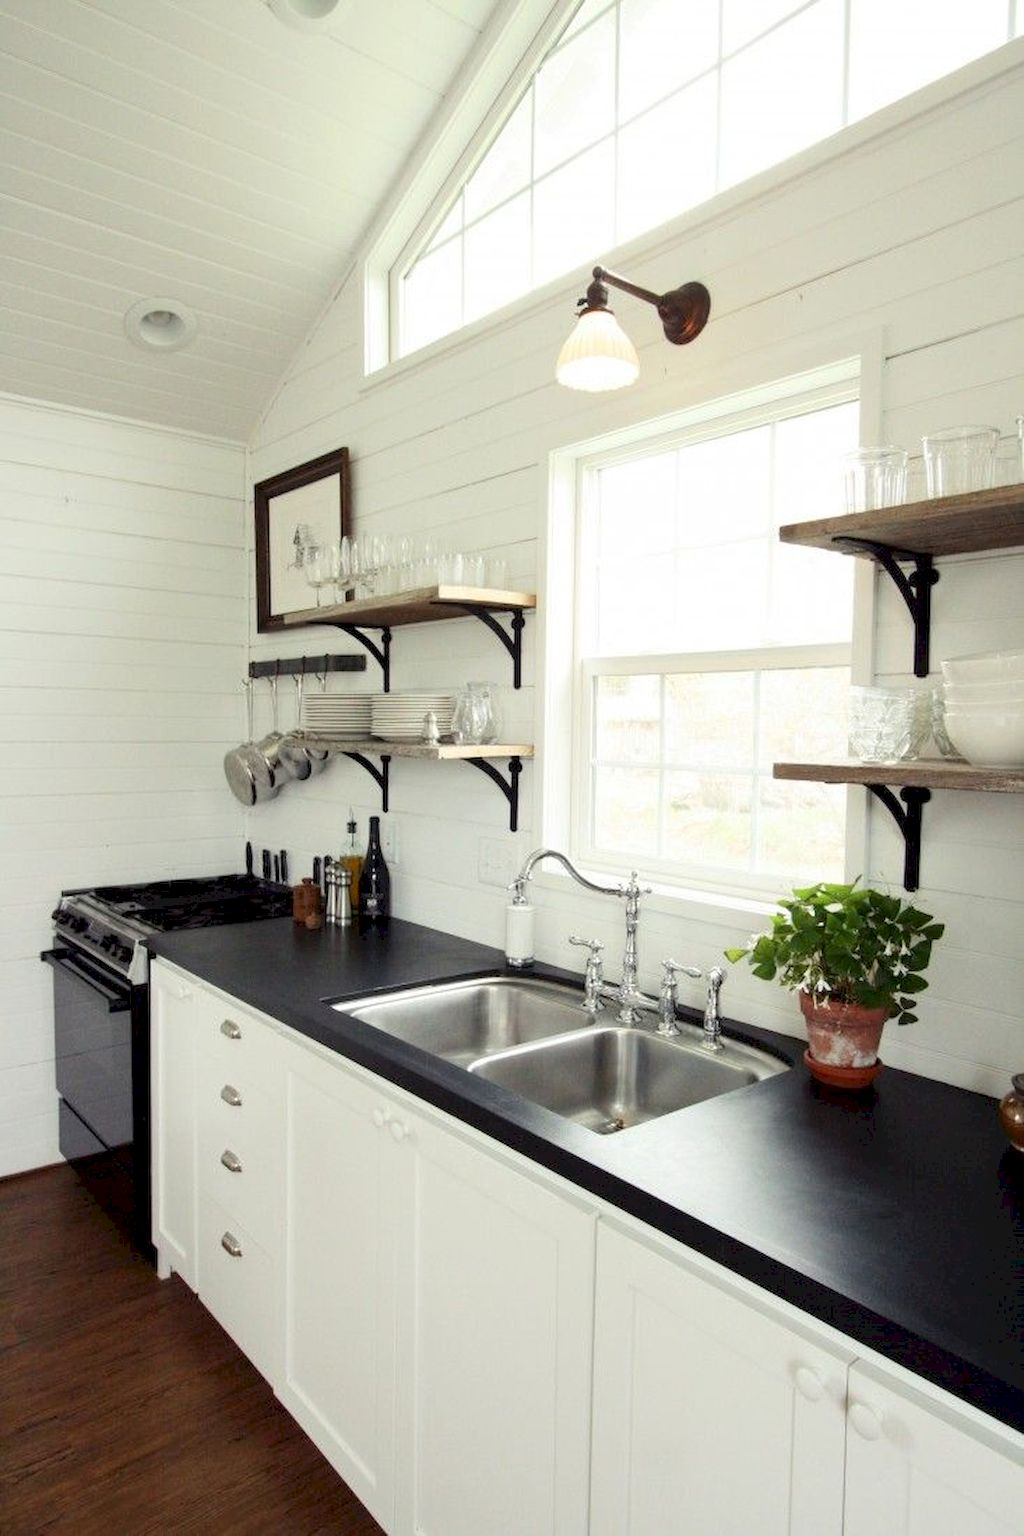 Kitchen Plan And Design For Small Room (106)